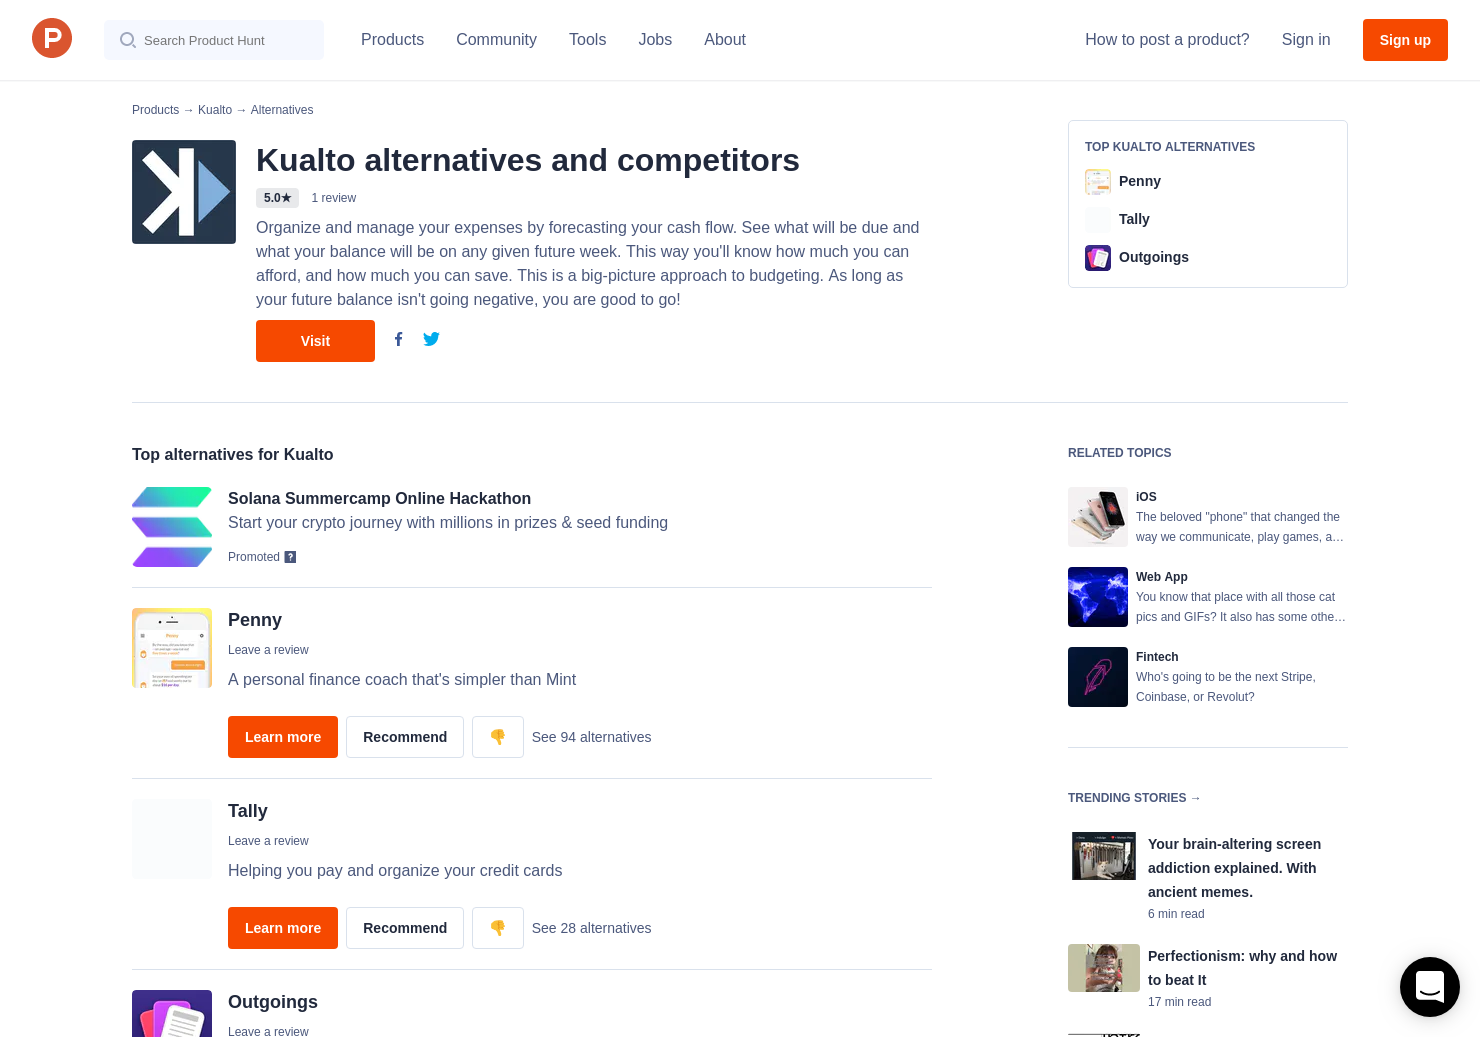 13 Alternatives to Kualto for iPhone | Product Hunt